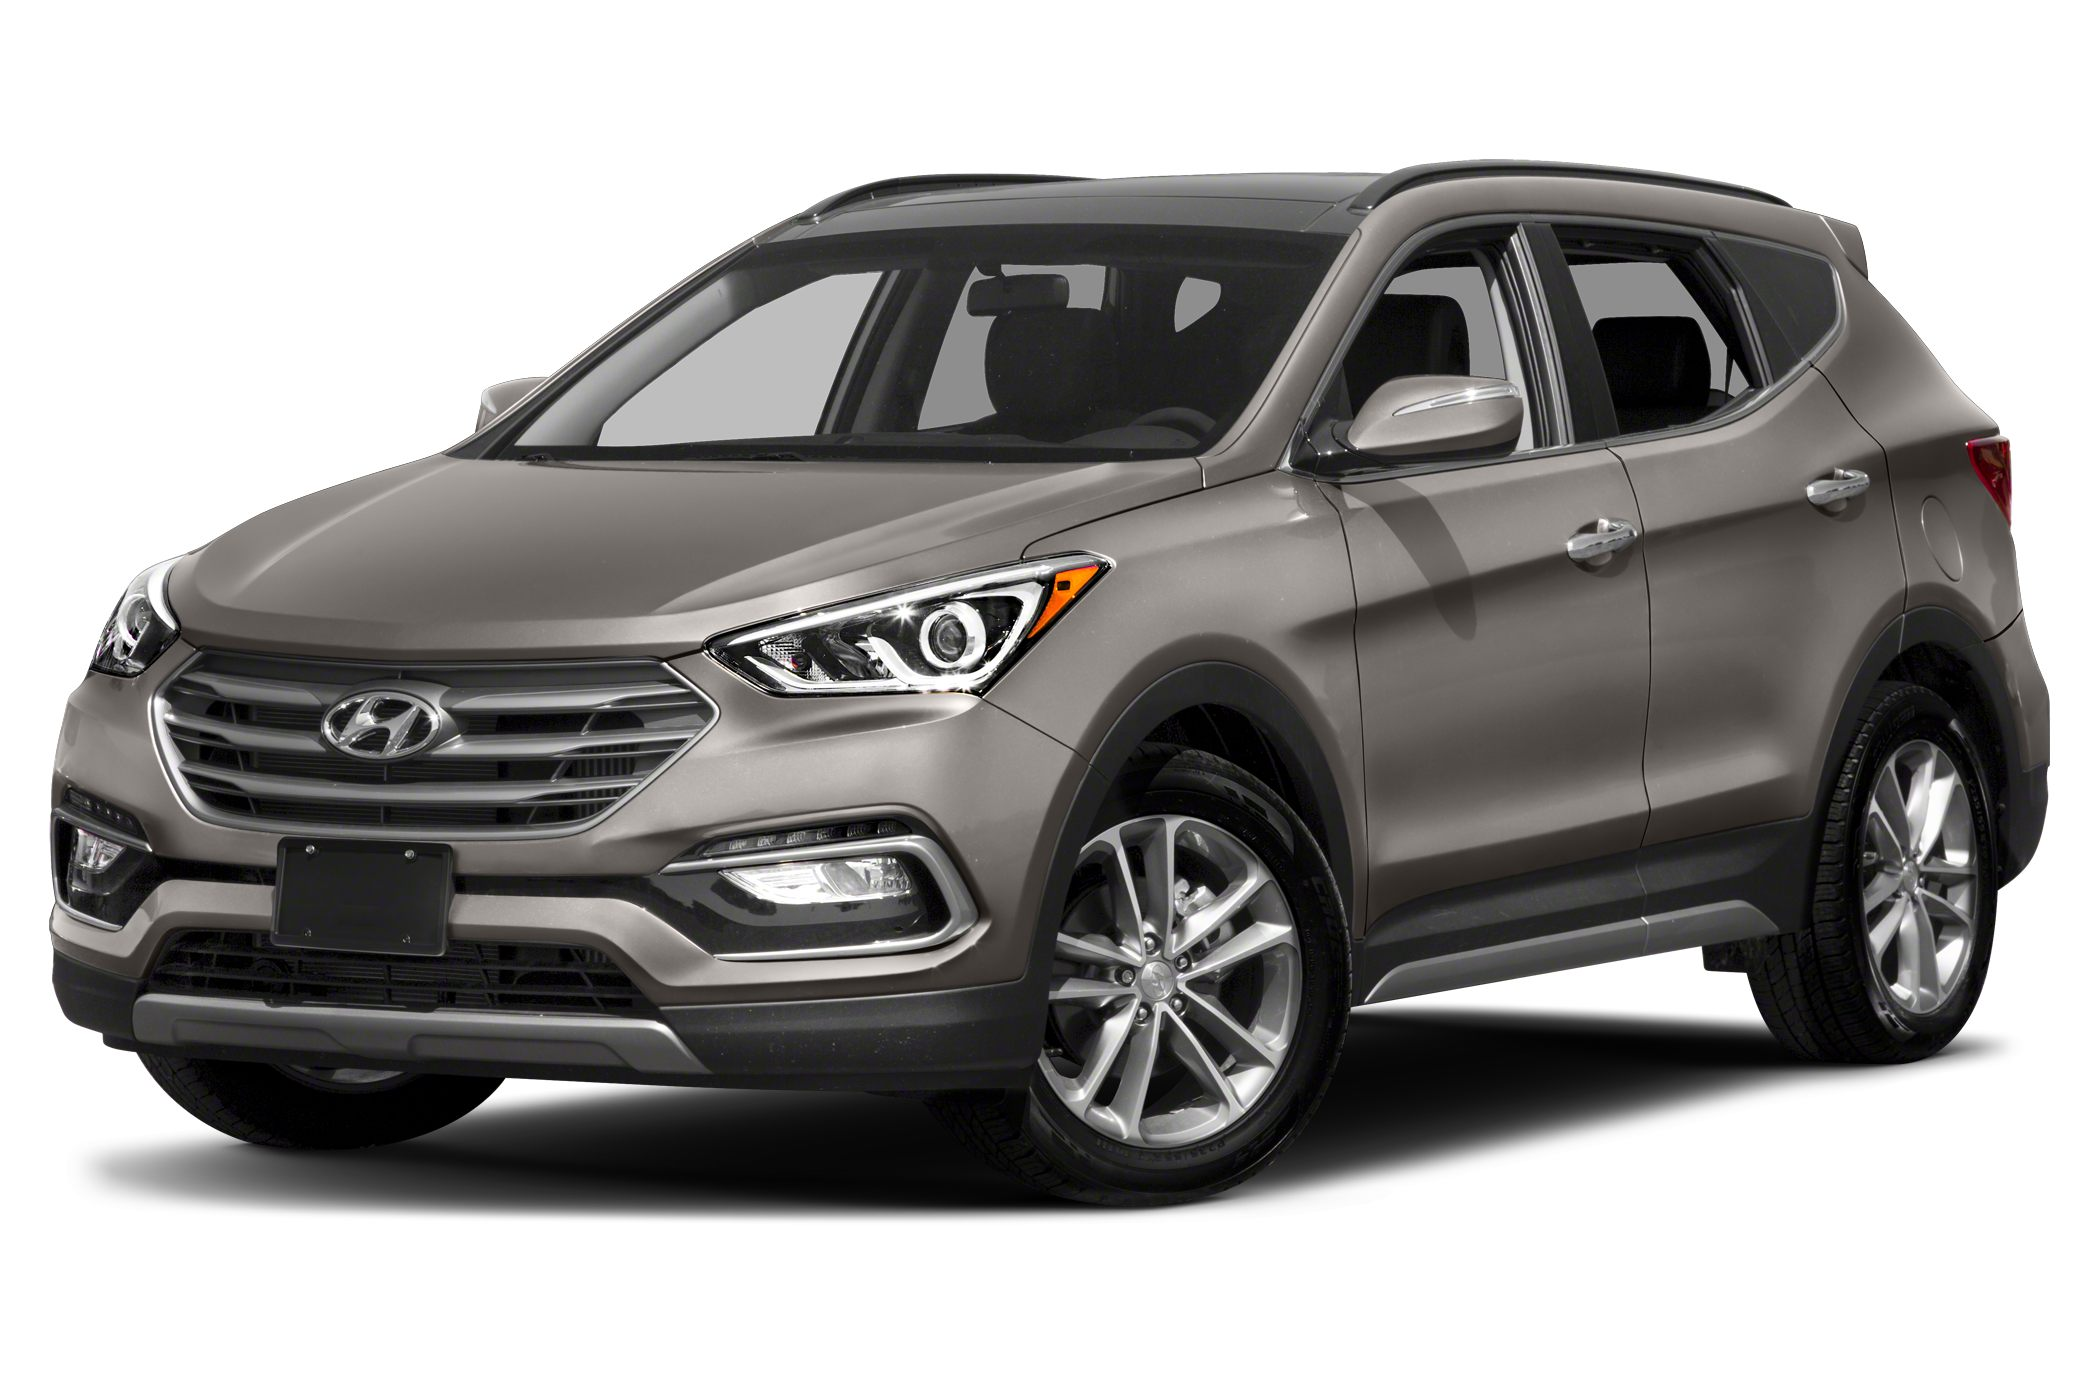 Hyundai Canada Incentives for the new 2019 Hyundai Santa Fe Sport Crossover SUV in Milton, Toronto, and the GTA